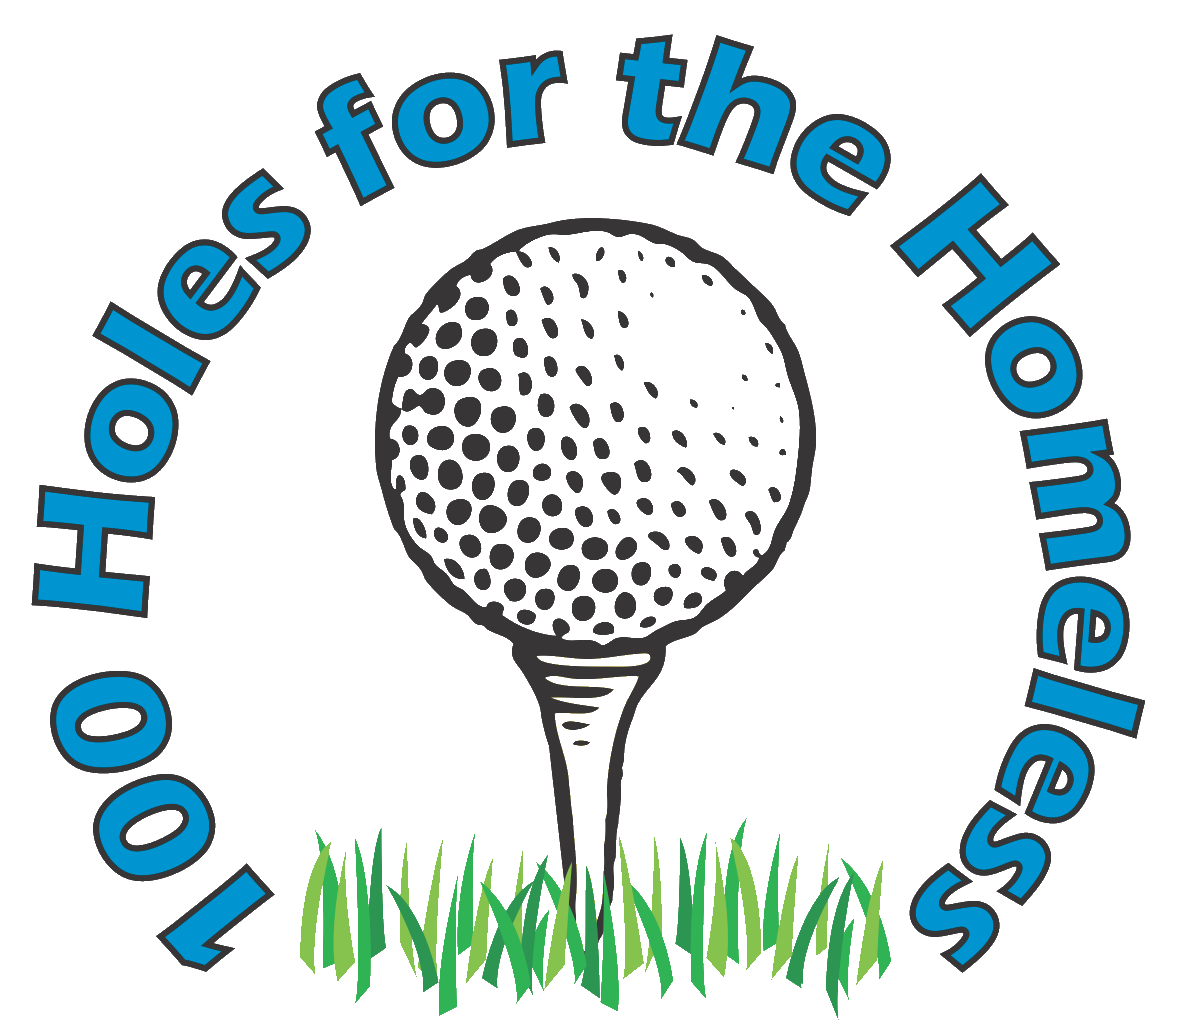 Hundred holes logo